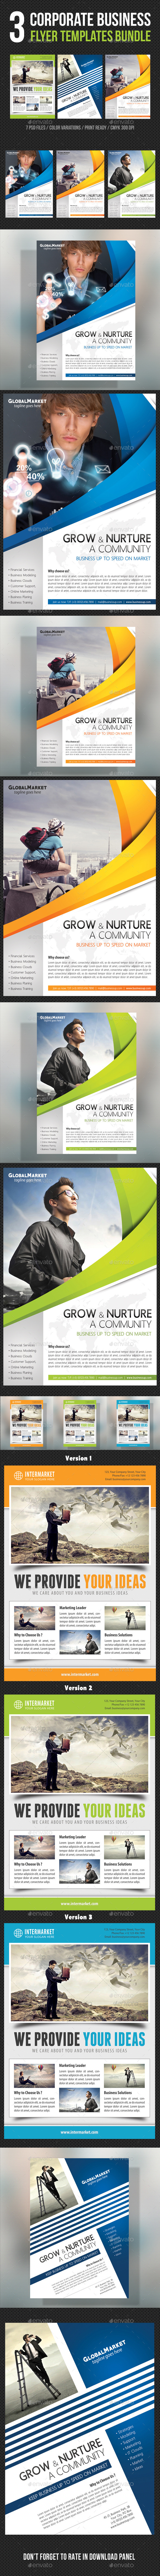 3 in 1 Corporate Business Flyer Bundle - Corporate Flyers